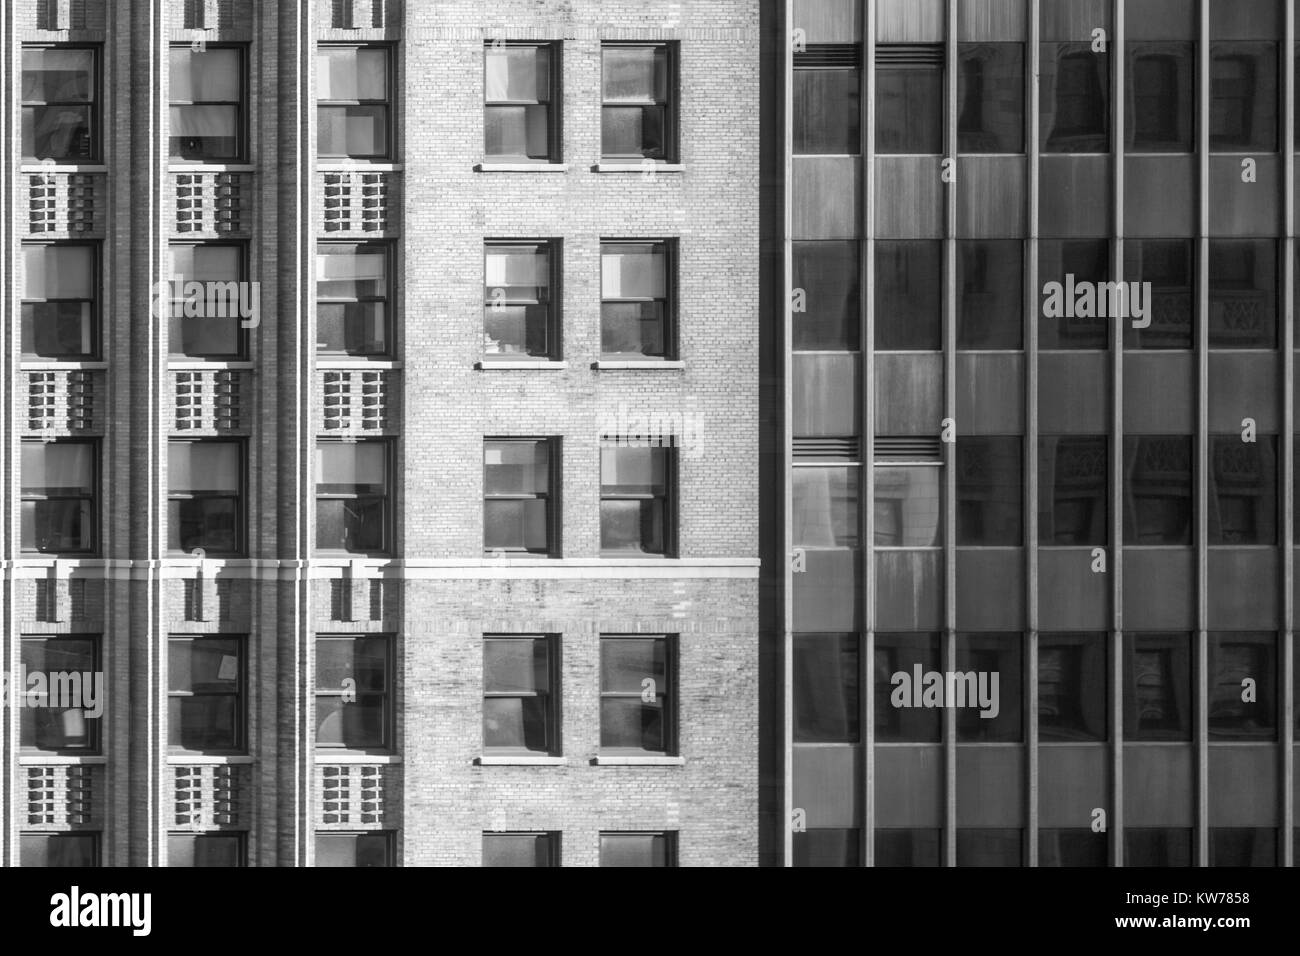 detail image of the facade of several buildings in downtown manhattan, - Stock Image